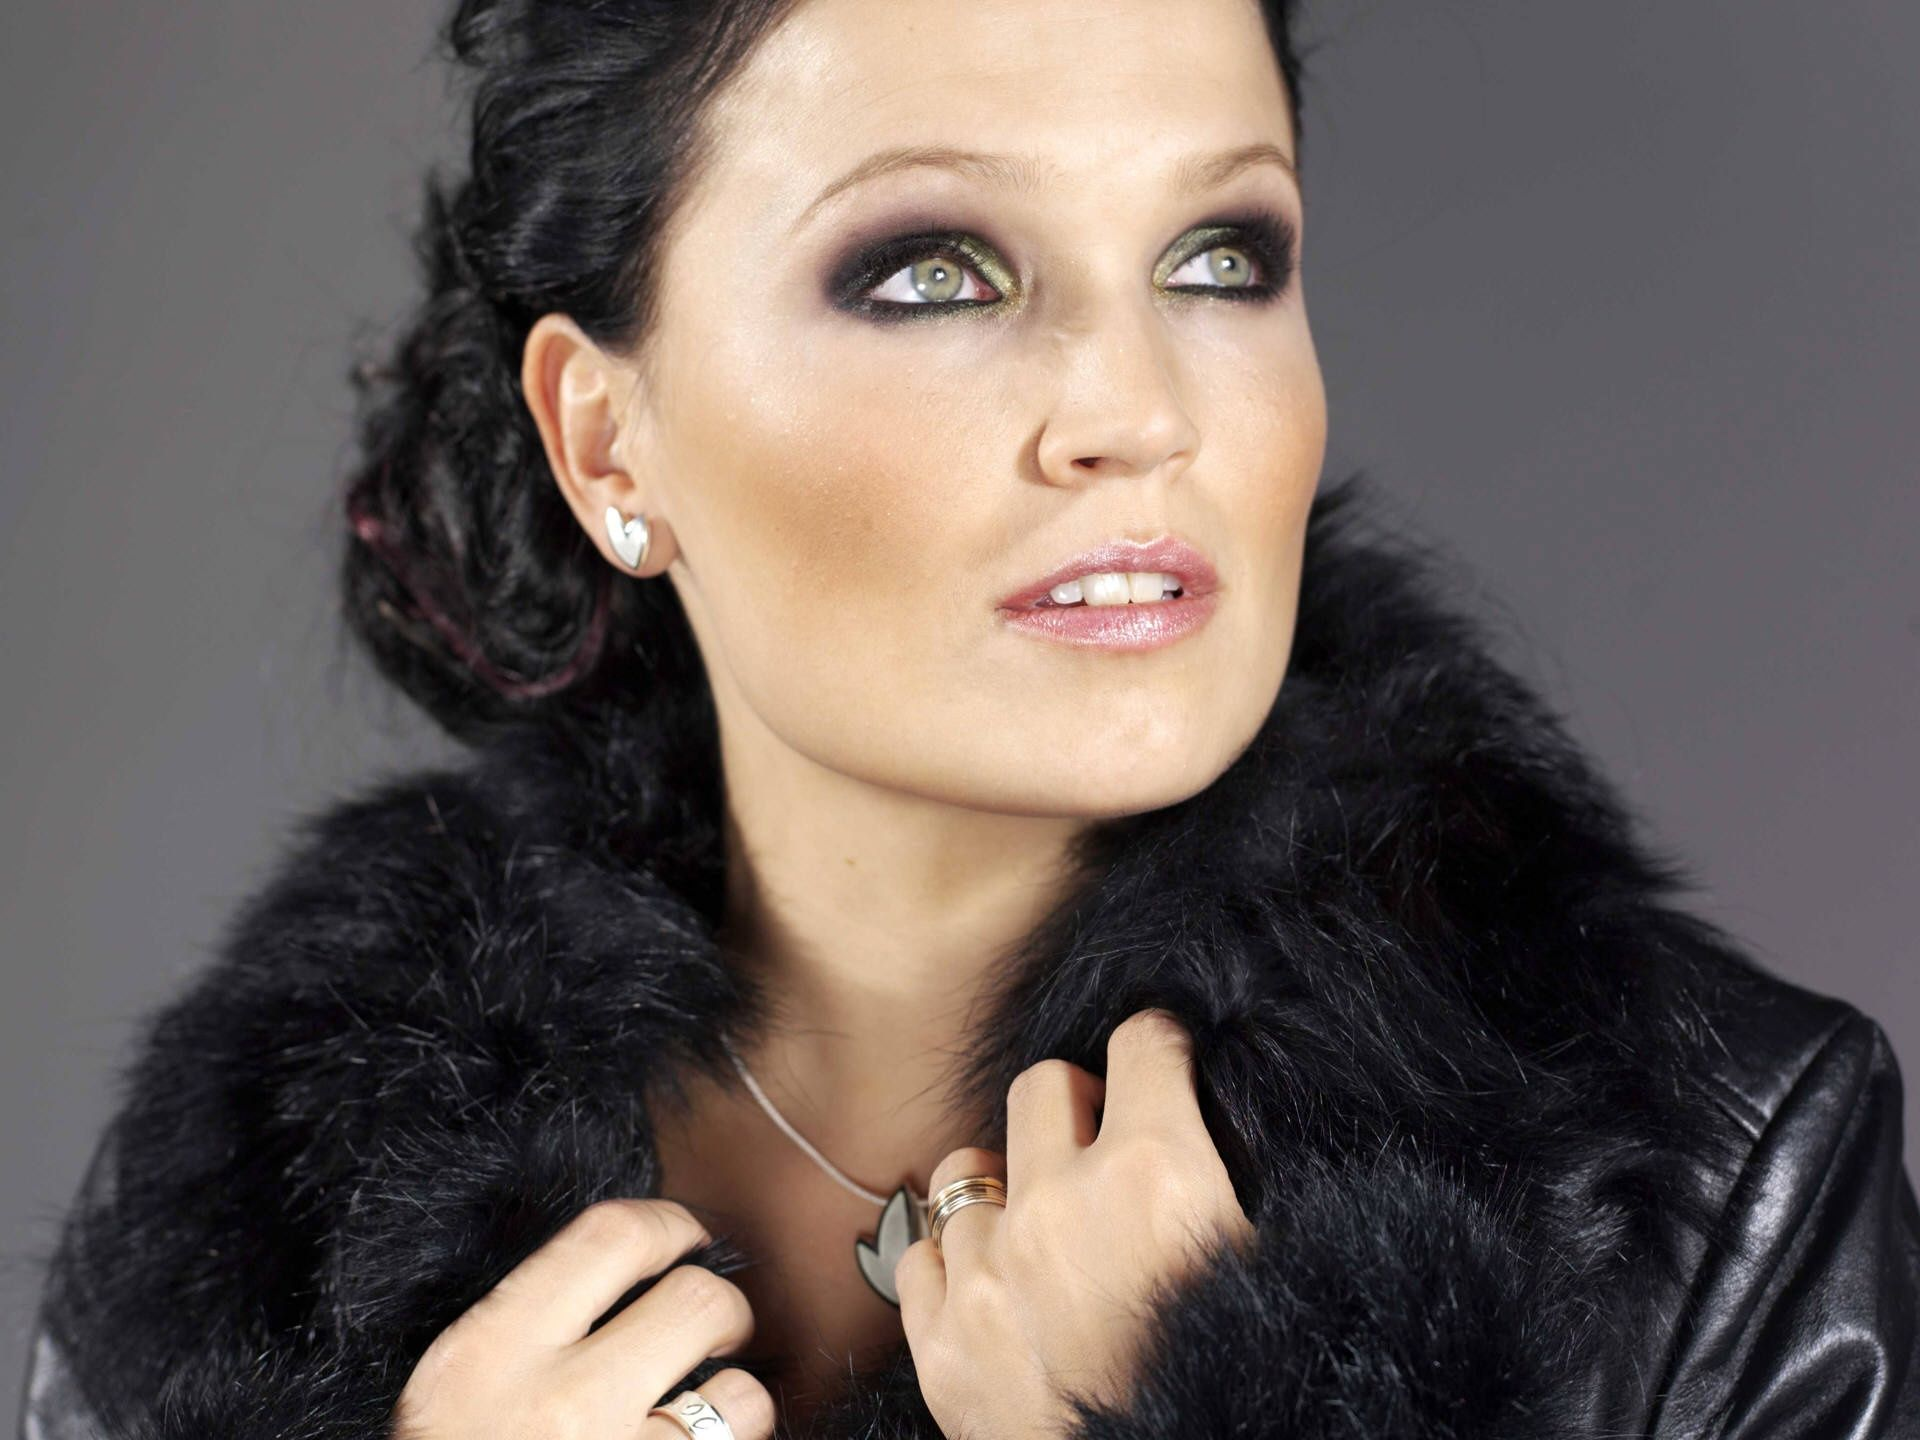 tarja turunen wallpaper - photo #41